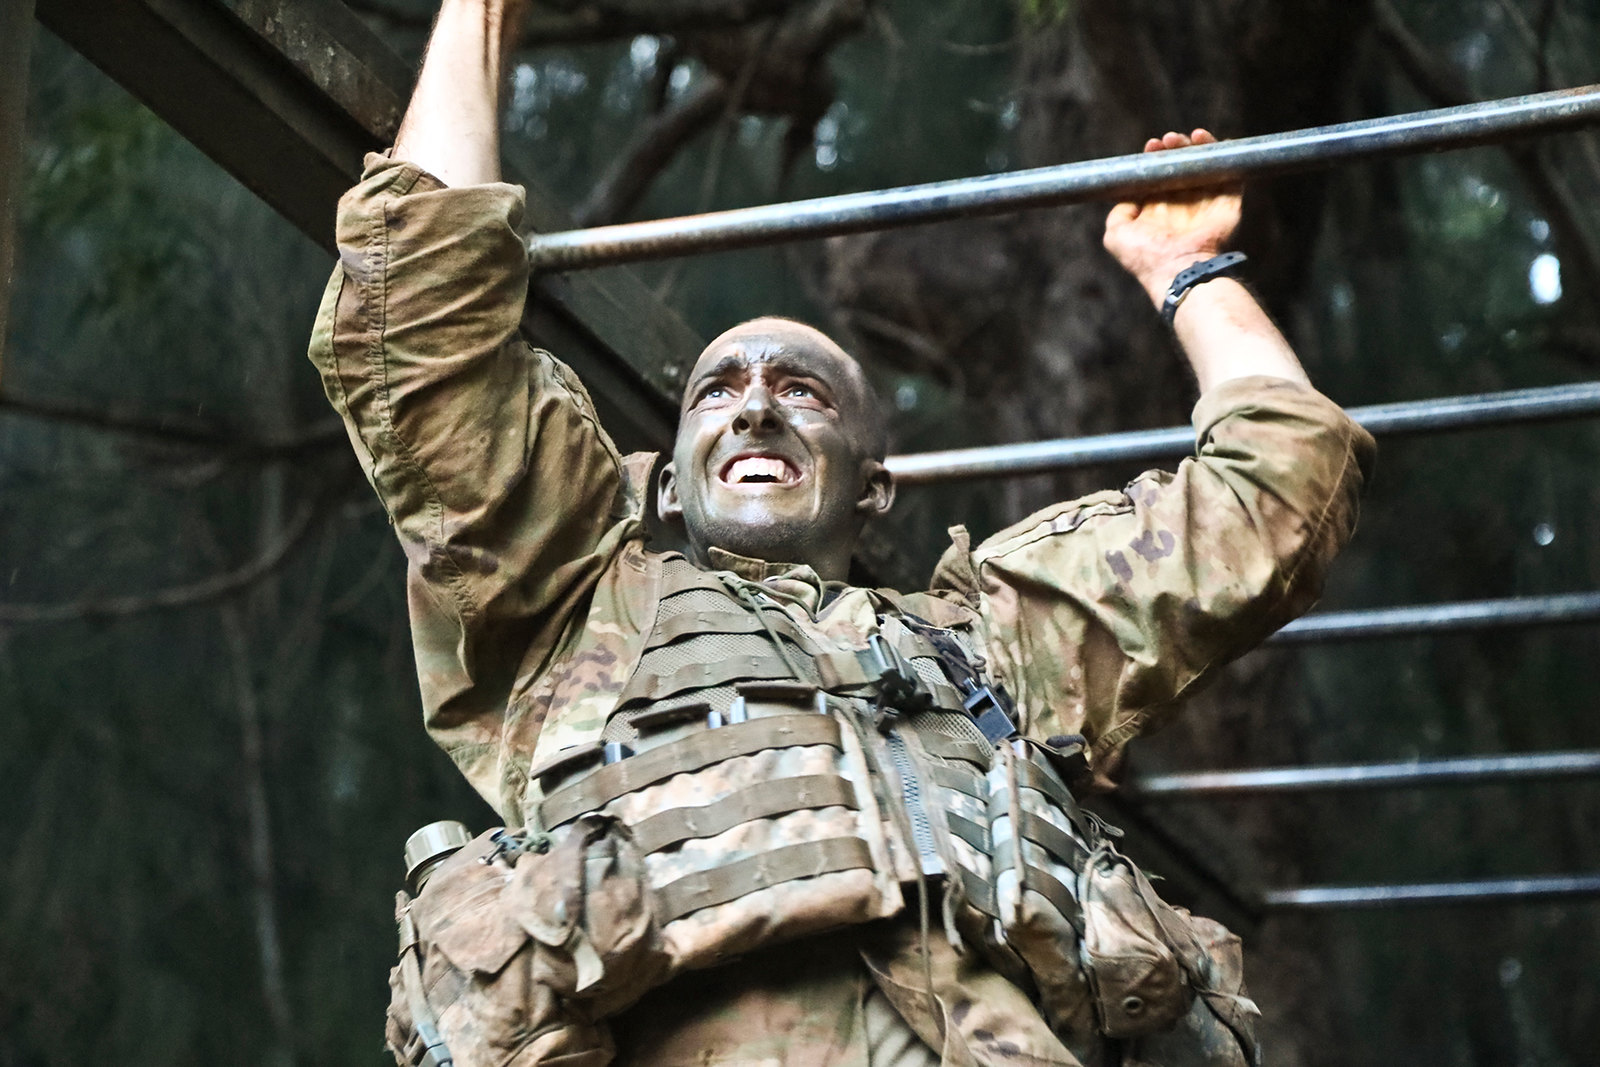 A soldier scales the monkey bars as part of the Green Mile physical endurance course during jungle training at Lightning Academy in Wahiawa, Hawaii, April 18, 2019. (Spc. Valencia McNeal/Army)